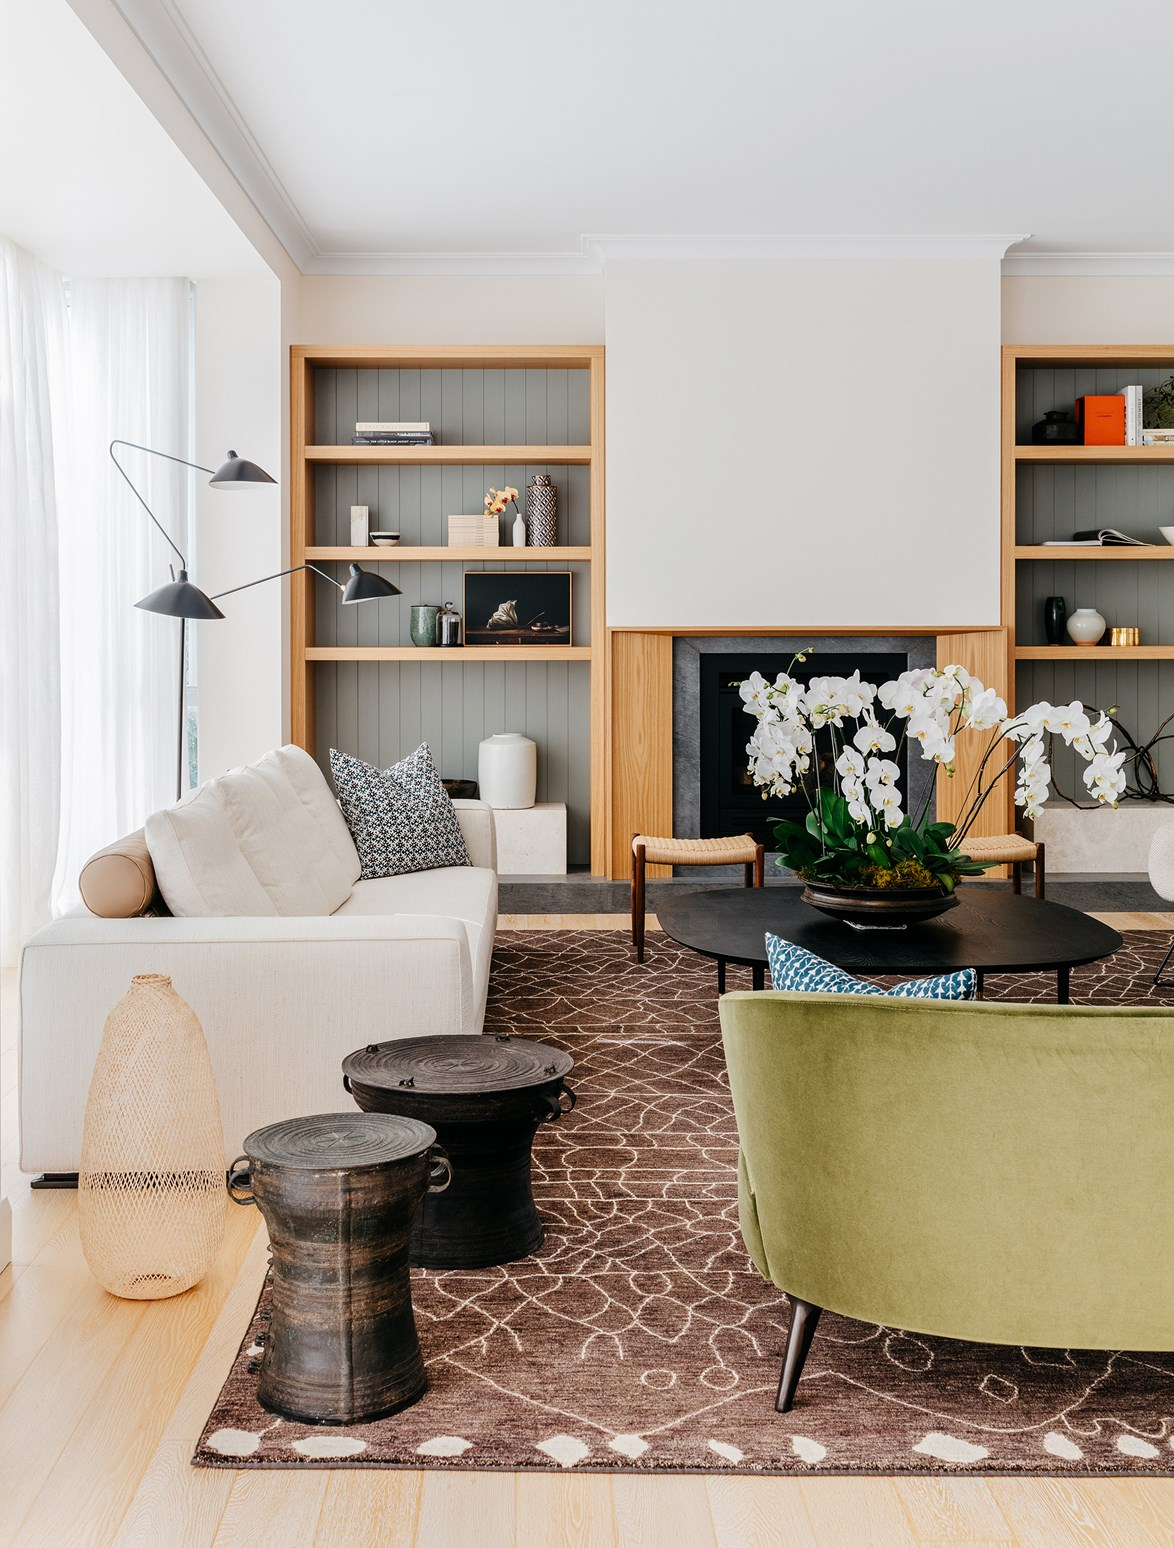 "<p>**AS A SHELVING ACCENT**<p> <p>Not prepared to panel an entire wall? Start with small steps, like panelling the back of a shelf to create an extra layer of interest to beautifully styled vignettes. Take style cues from this living room in a [contemporary home](https://www.homestolove.com.au/how-to-infuse-warmth-into-a-contemporary-home-4628|target=""_blank"") where the designers worked to create a warm, lived-in look. Panelled shelving works particularly well in homes channelling a Hamptons or [French provincial style](https://www.homestolove.com.au/french-provincial-style-10-key-elements-6741